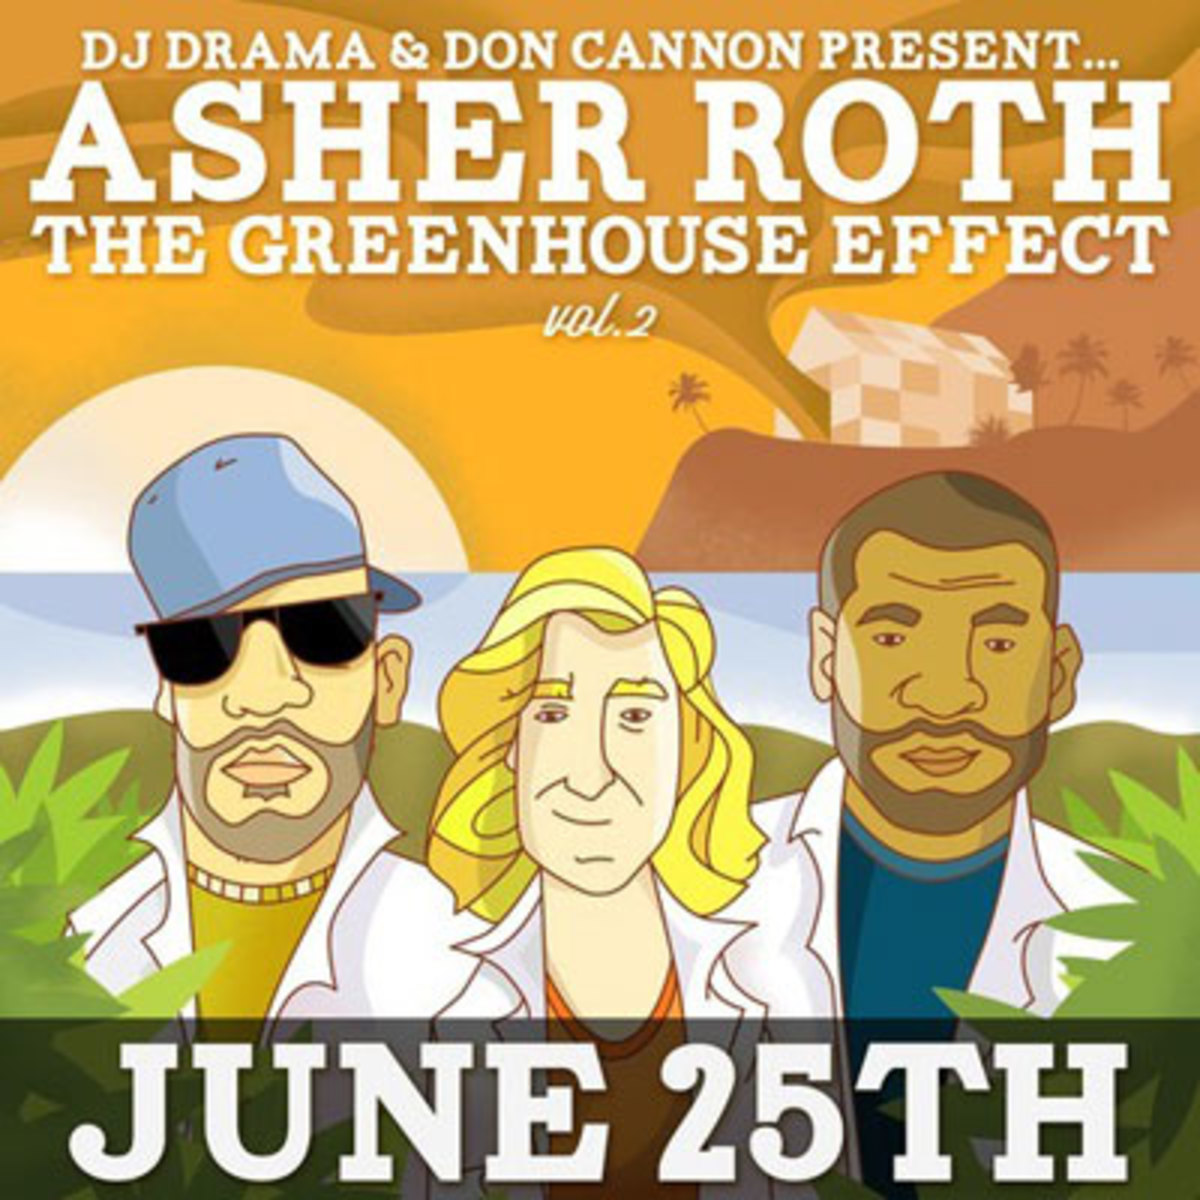 asherroth-greenhouse2.jpg